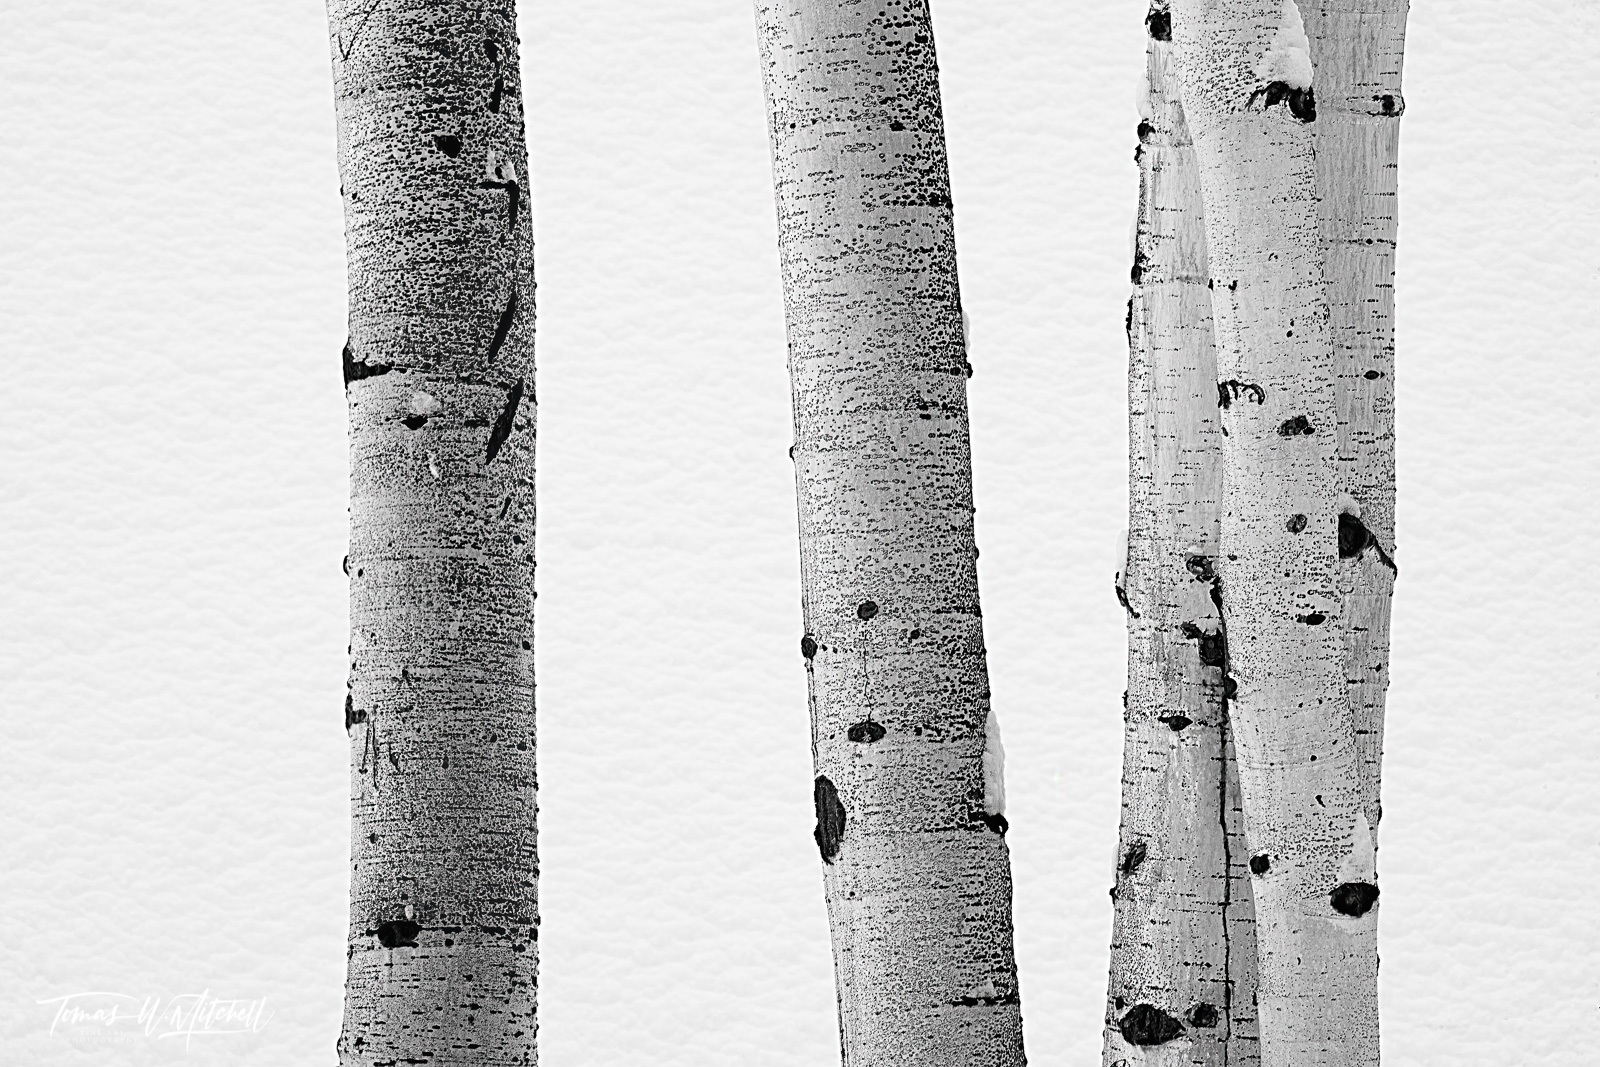 UINTA-WASATCH-CACHE NATIONAL FOREST, UTAH, limited edition, fine art, prints, tree, texture, quaking aspen, trunks, white, black, snow, winter, photograph, photo